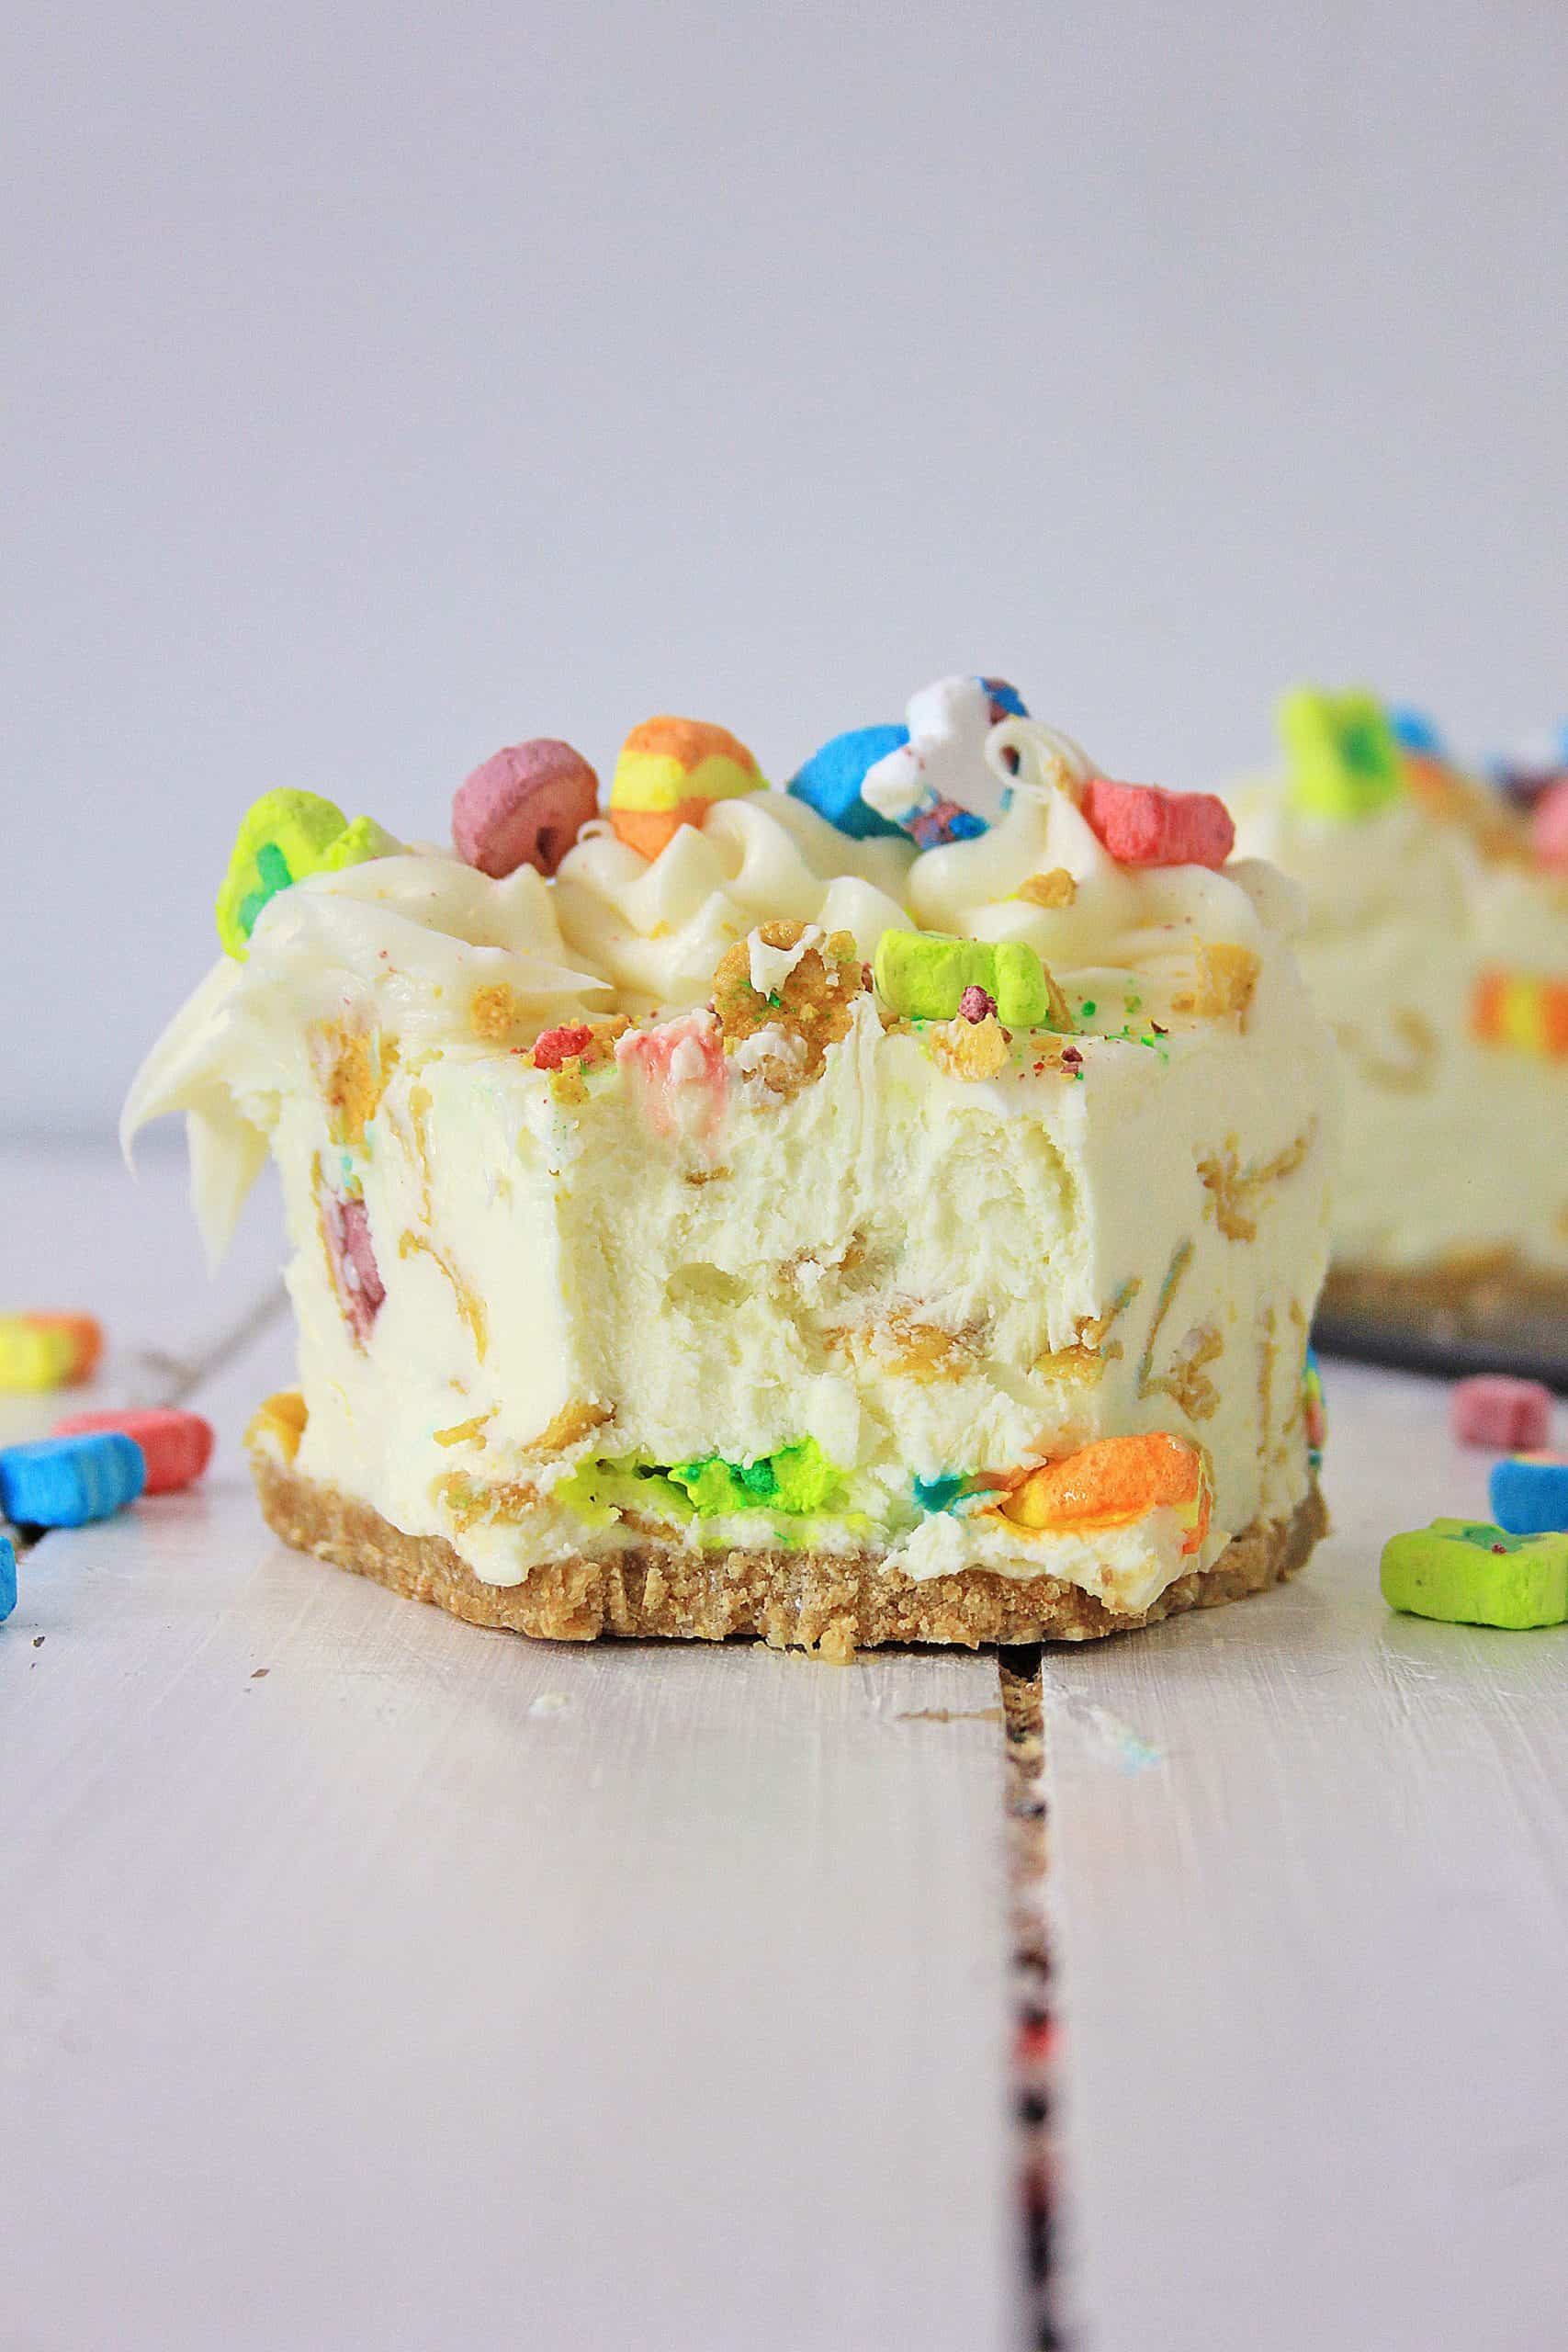 Slice of Lucky charms cheesecake missing bite